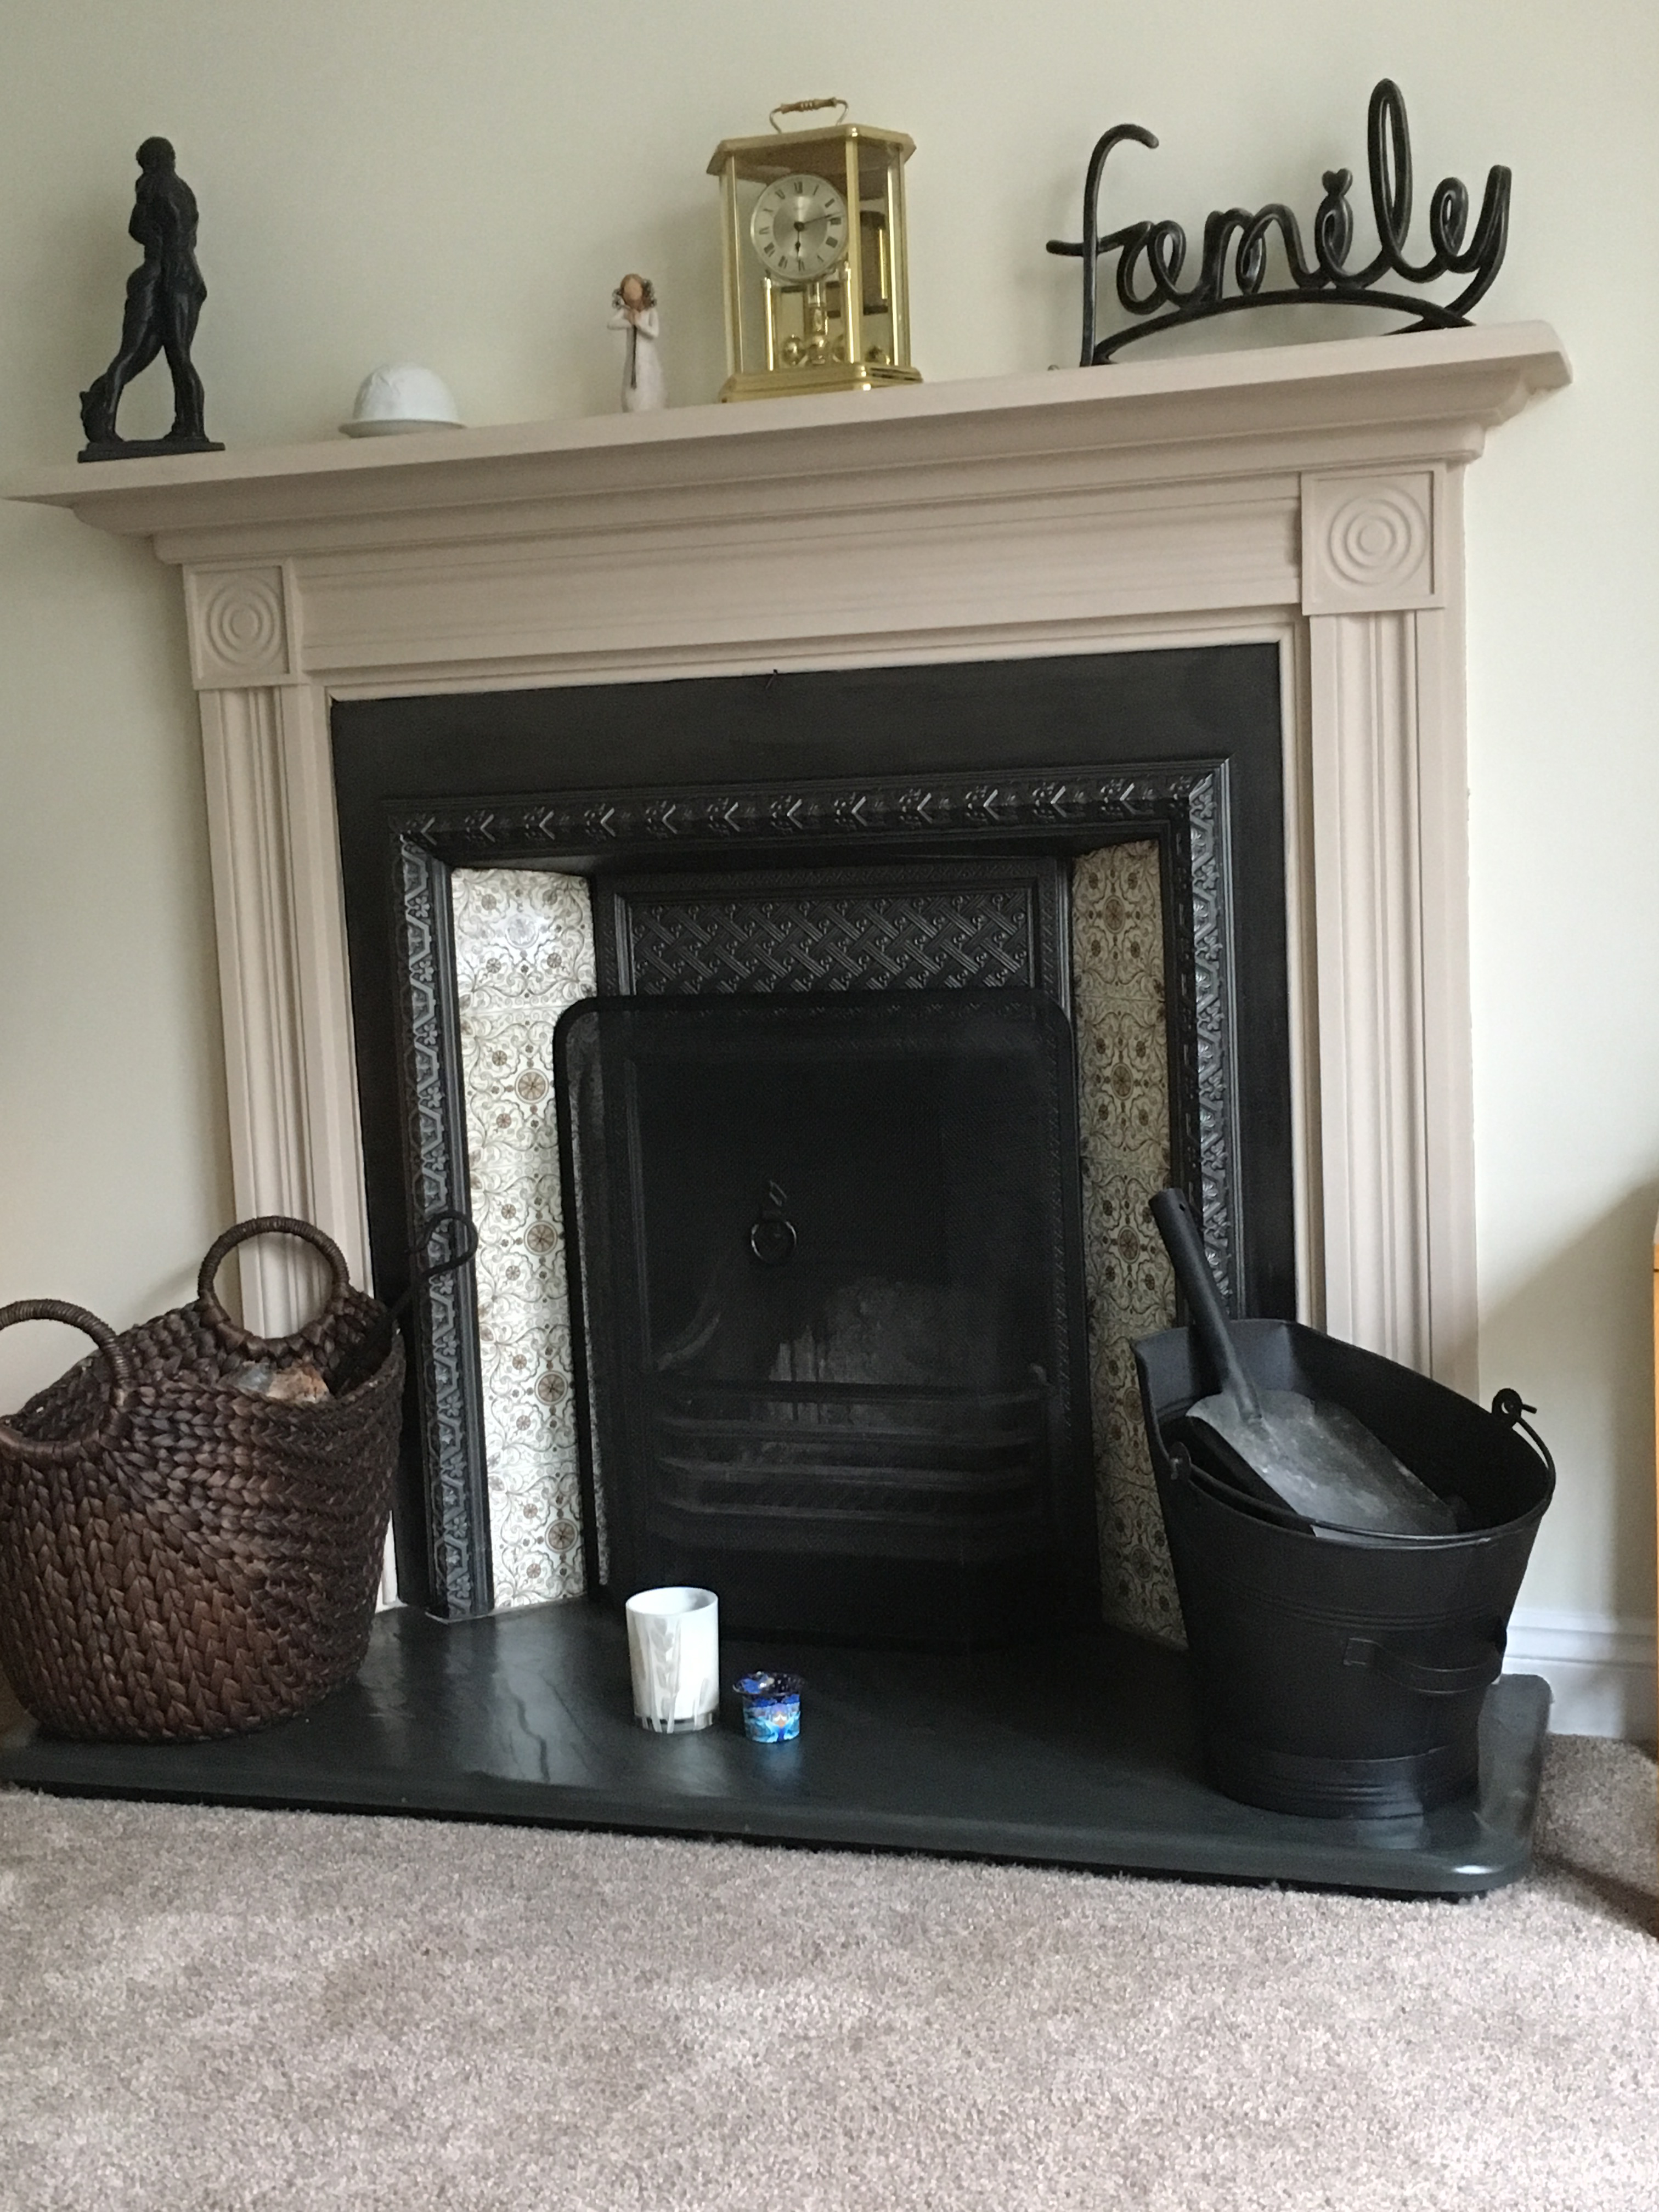 reclaimed fireplaces index x depth antiquefireplaces painted surround width antique vintage slateinshop fireplace victorian slate ins height